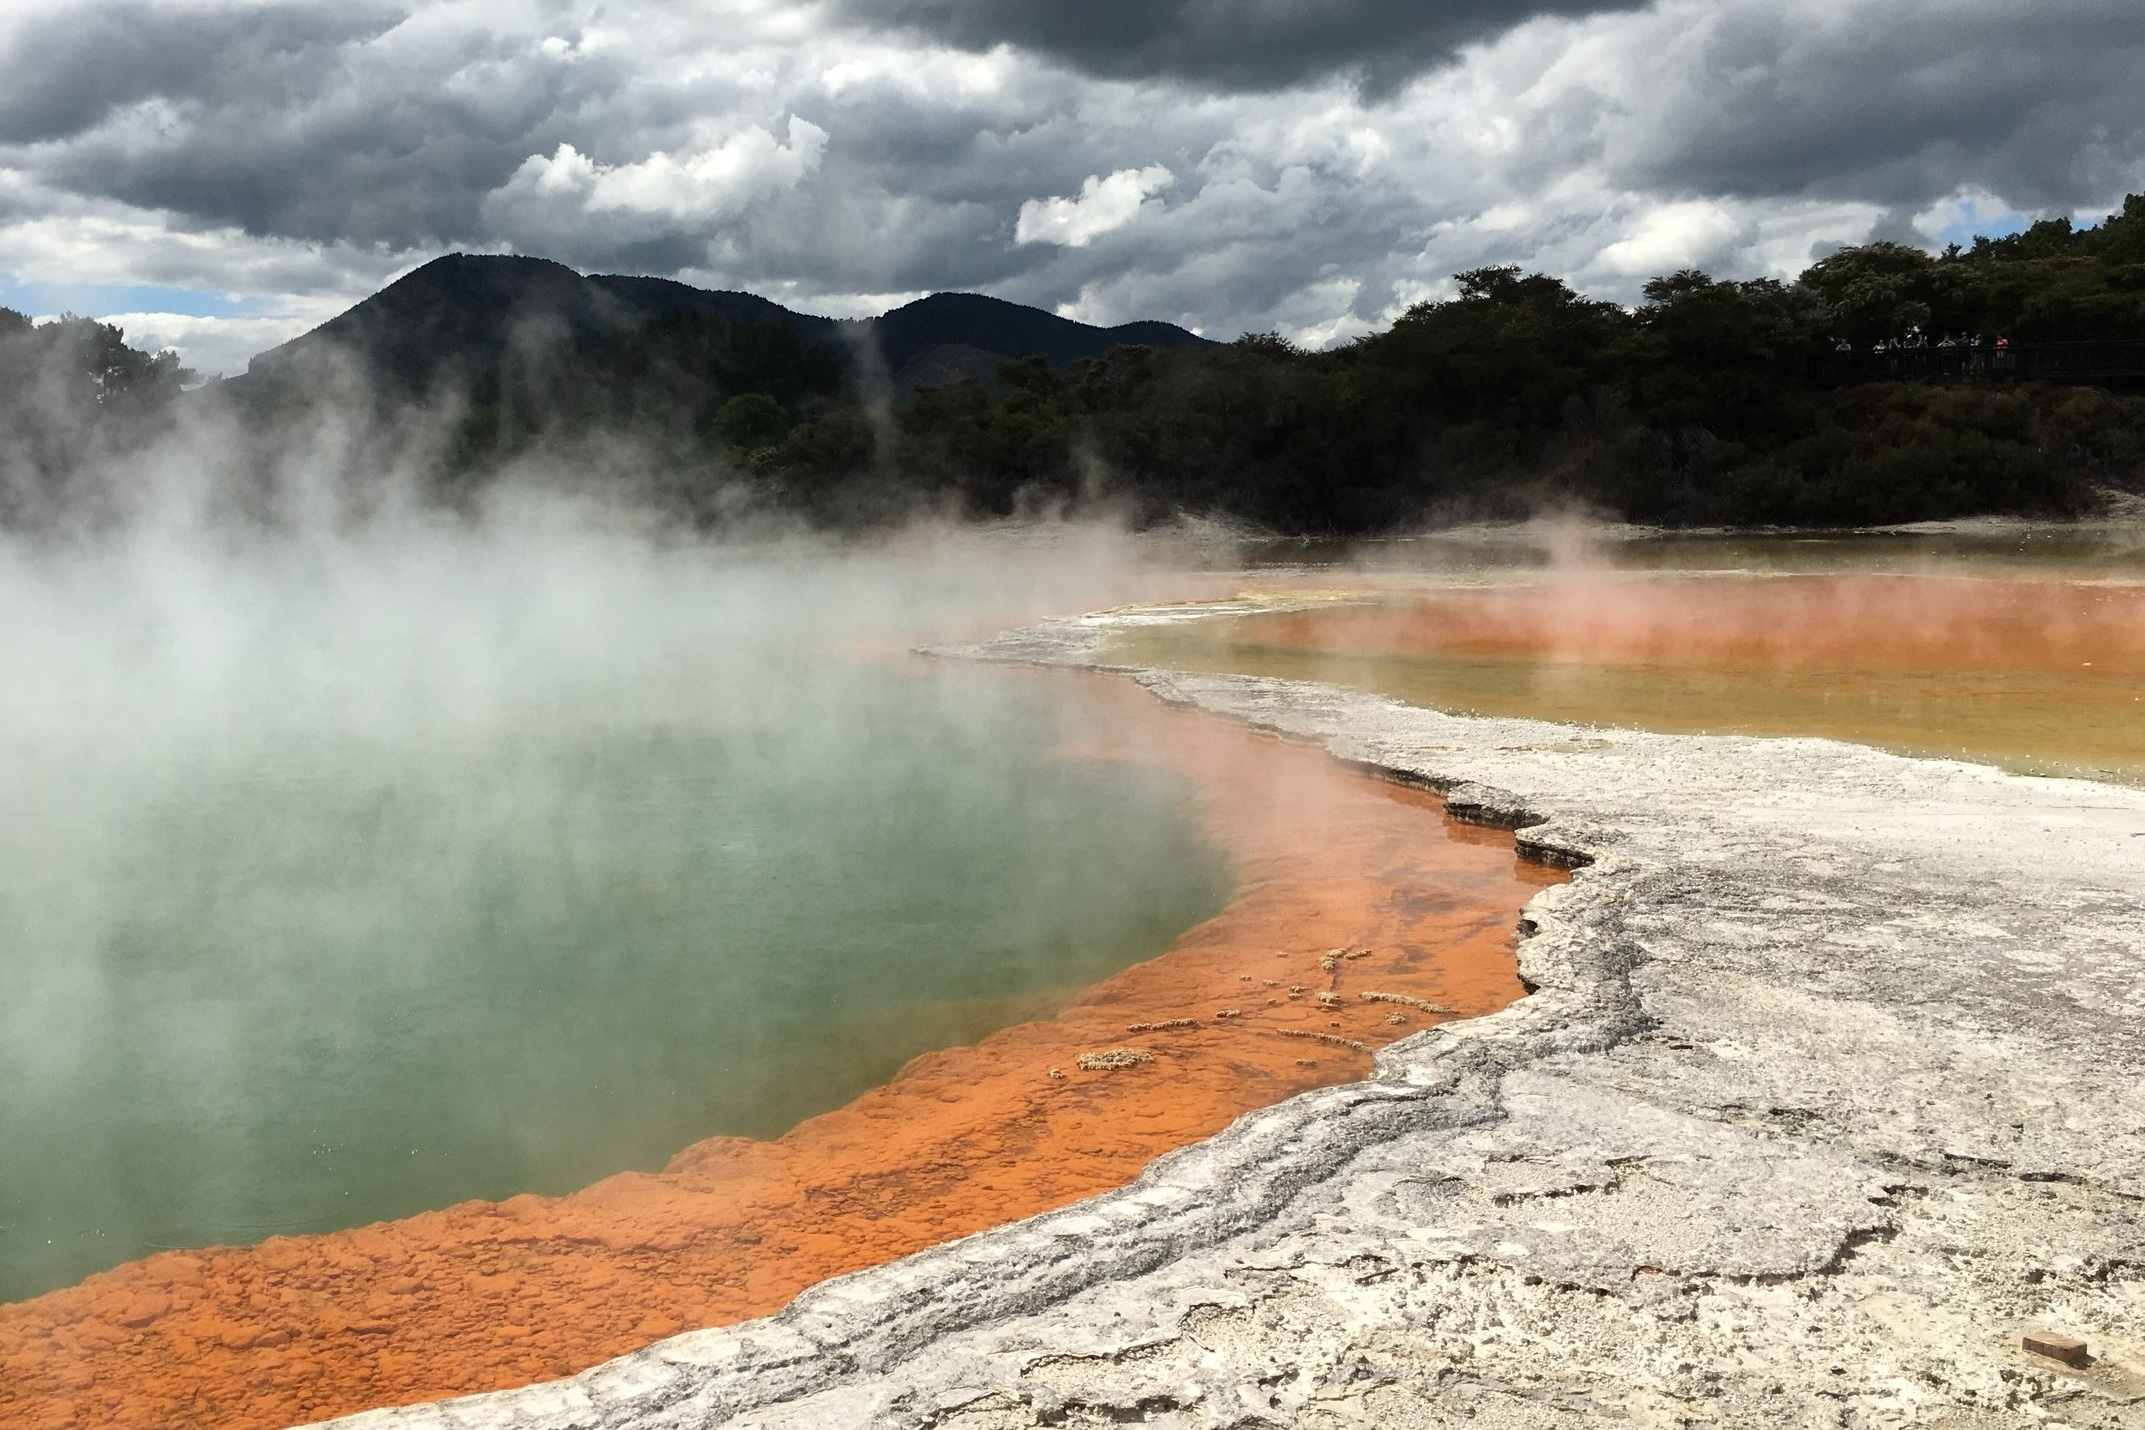 Rotorua Tour (including Wai-O-Tapu) - From $275 Per Person